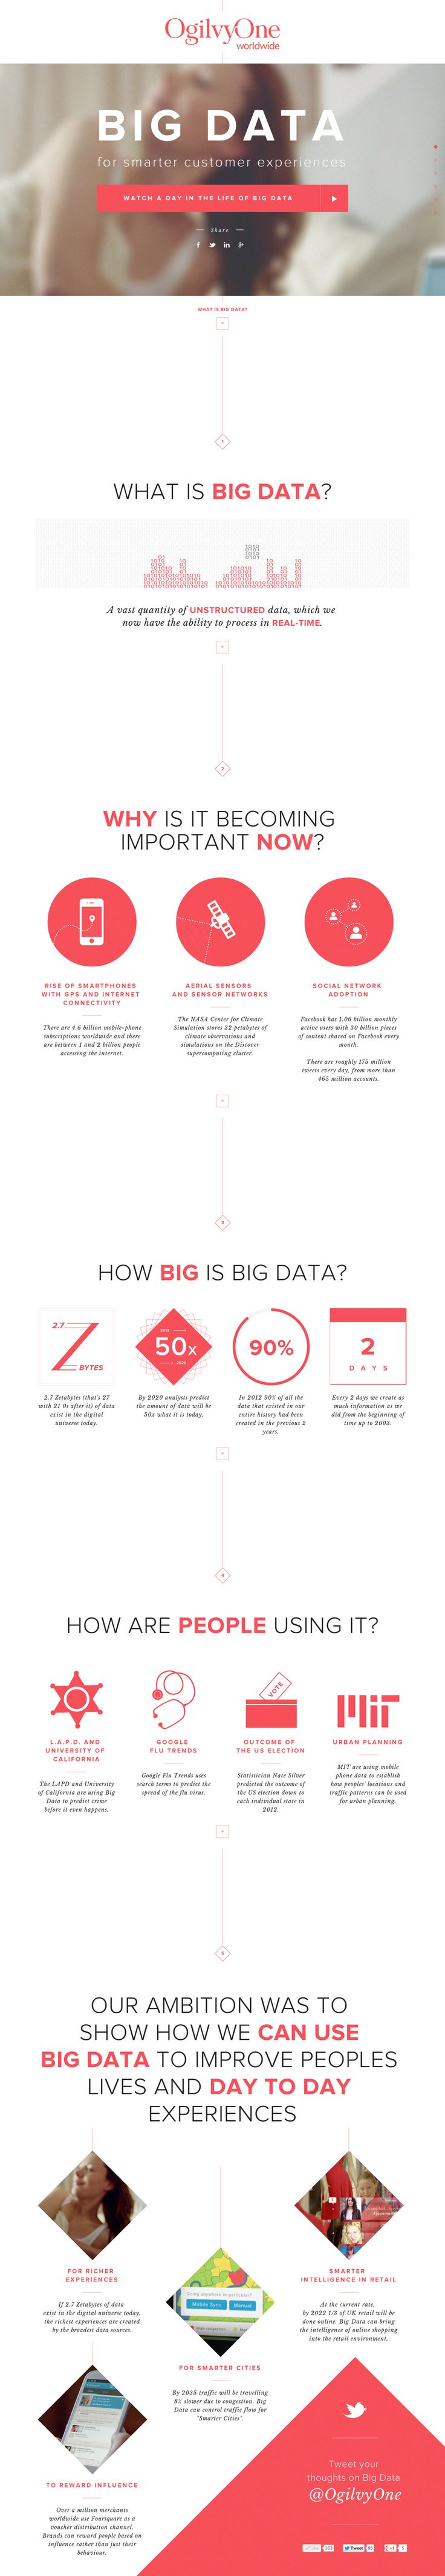 "The team over at OgilvyOne demonstrate how ""Big Data"" can create smarter customer experiences in a slick responsive one pager filled with Infographics."